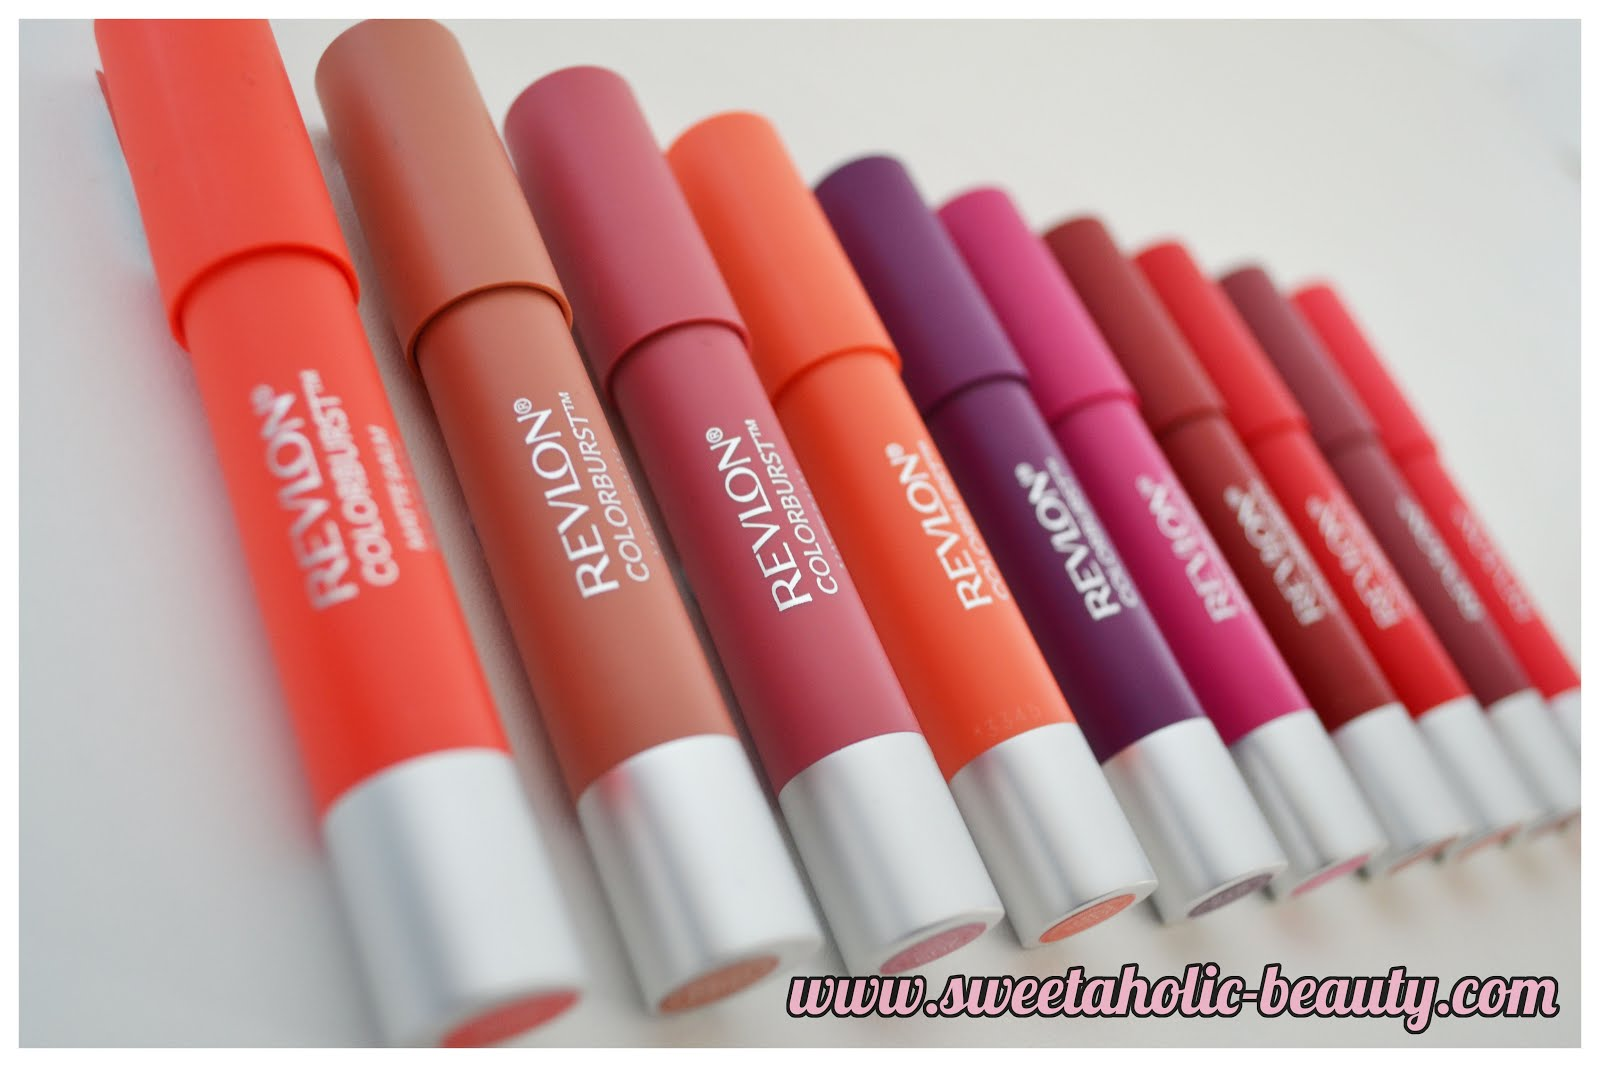 Revlon Colorburst Matte Balms Review & Swatches - Sweetaholic Beauty